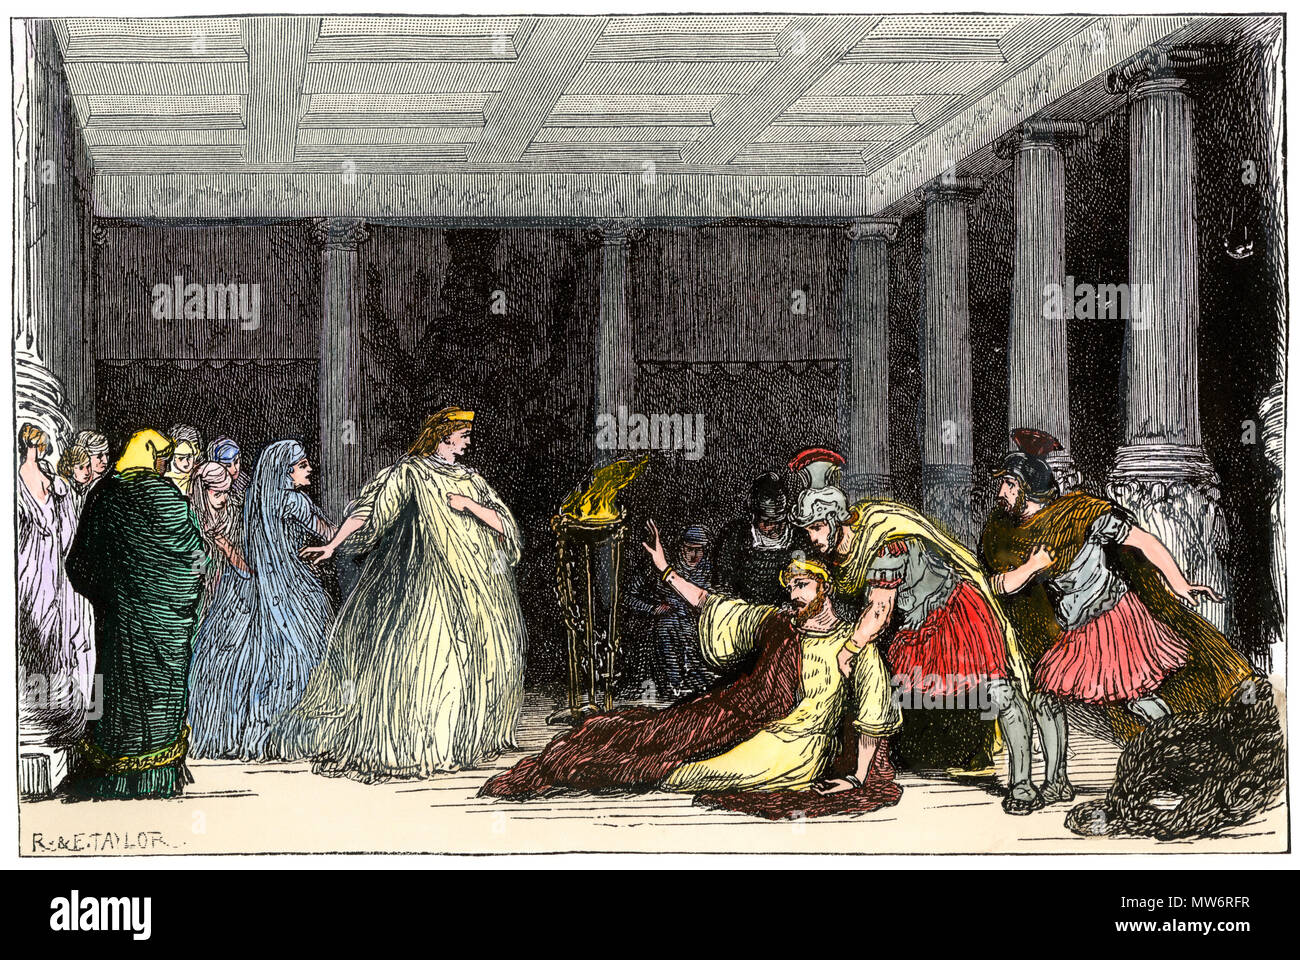 Tennyson's 'The Cup' performed at the Lyceum by Henry Irving and Ellen Terry, 1881. Hand-colored woodcut - Stock Image